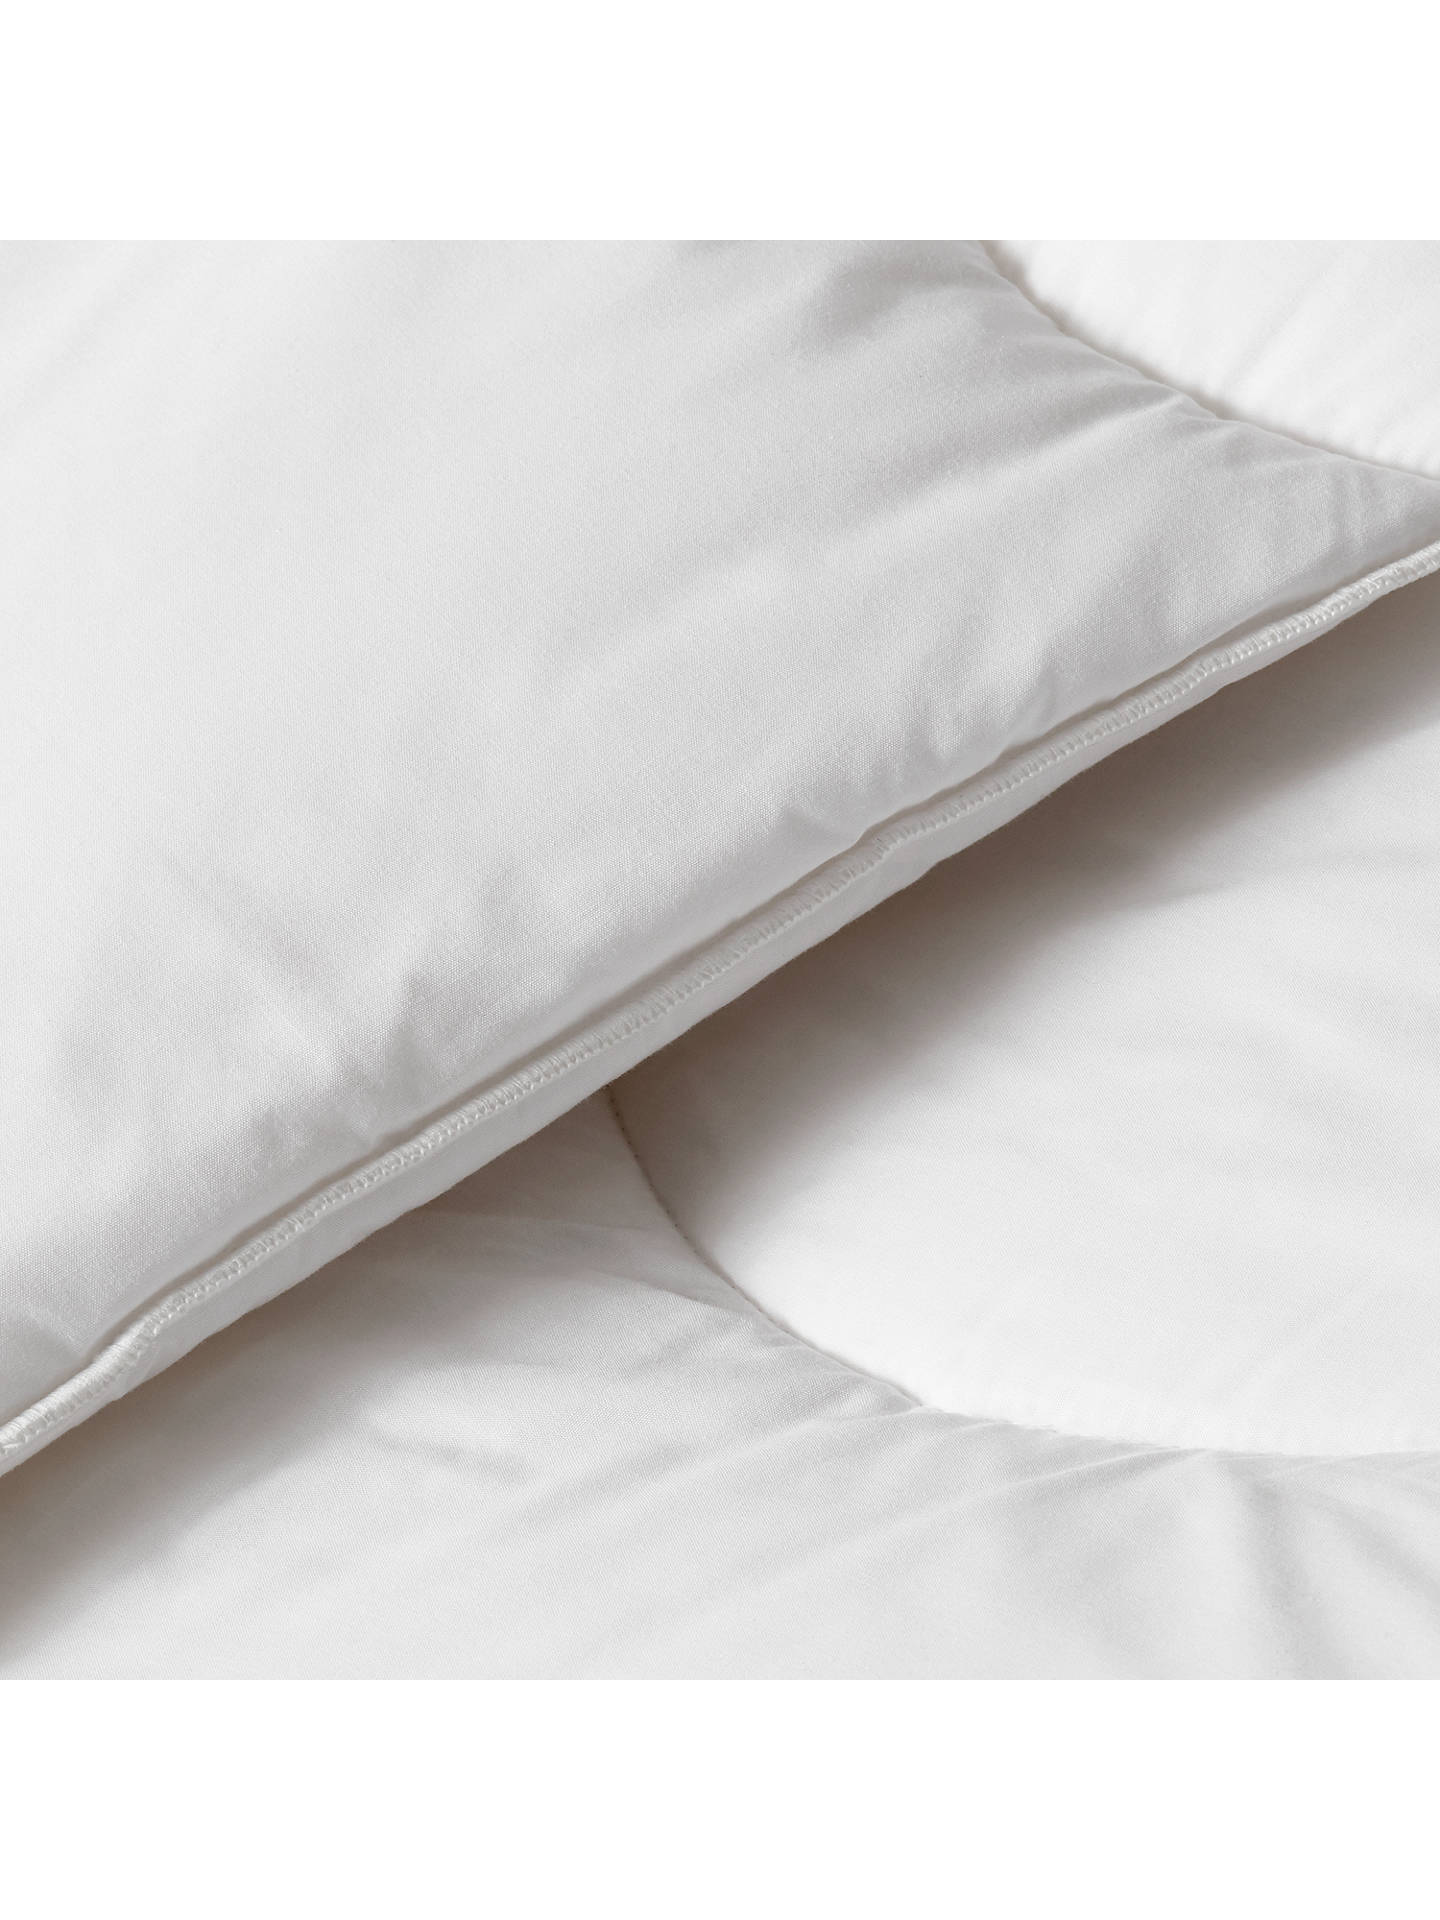 BuyJohn Lewis & Partners The Basics Microfibre Duvets, 10.5 Tog, Single Online at johnlewis.com